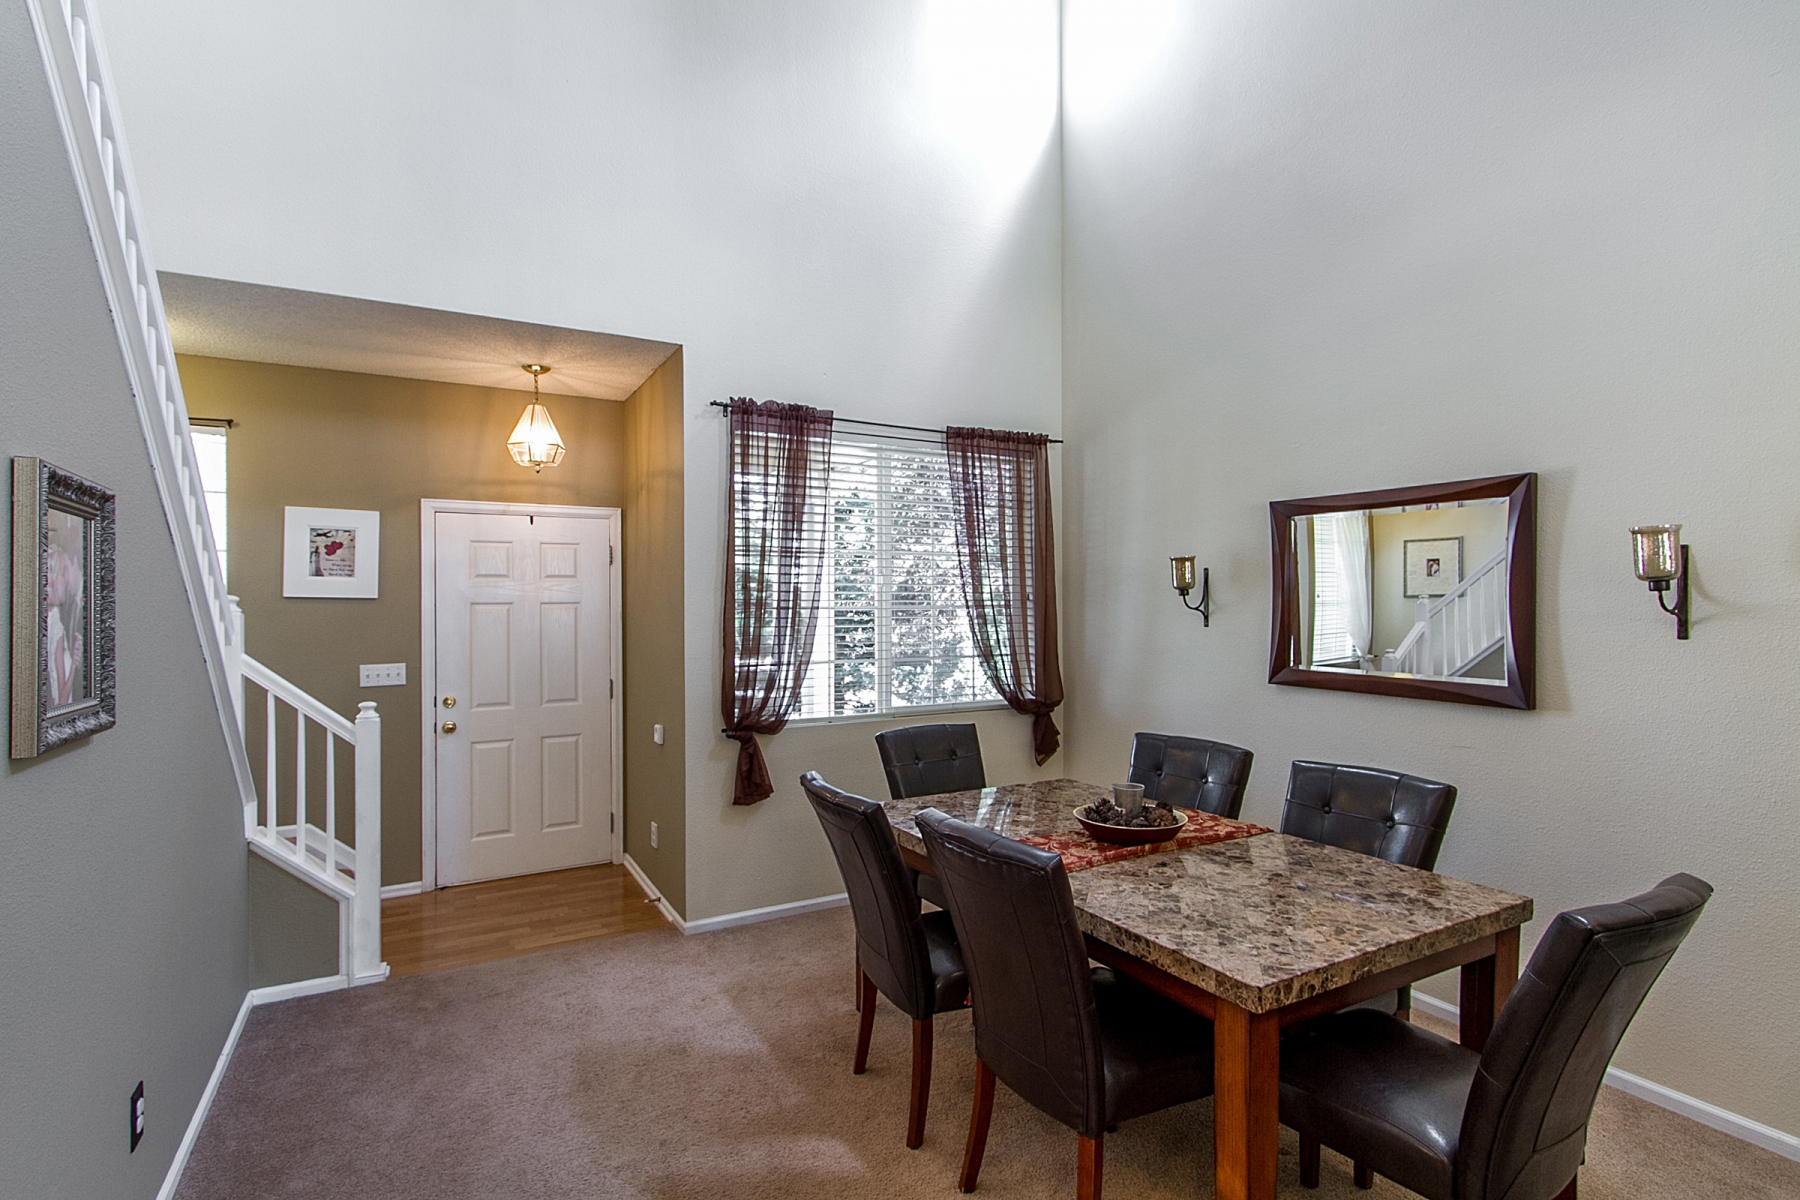 Single Family Home for Sale at Charming and well-maintained home in Castle Rock 4908 Thorndike Ave Castle Rock, Colorado 80104 United States